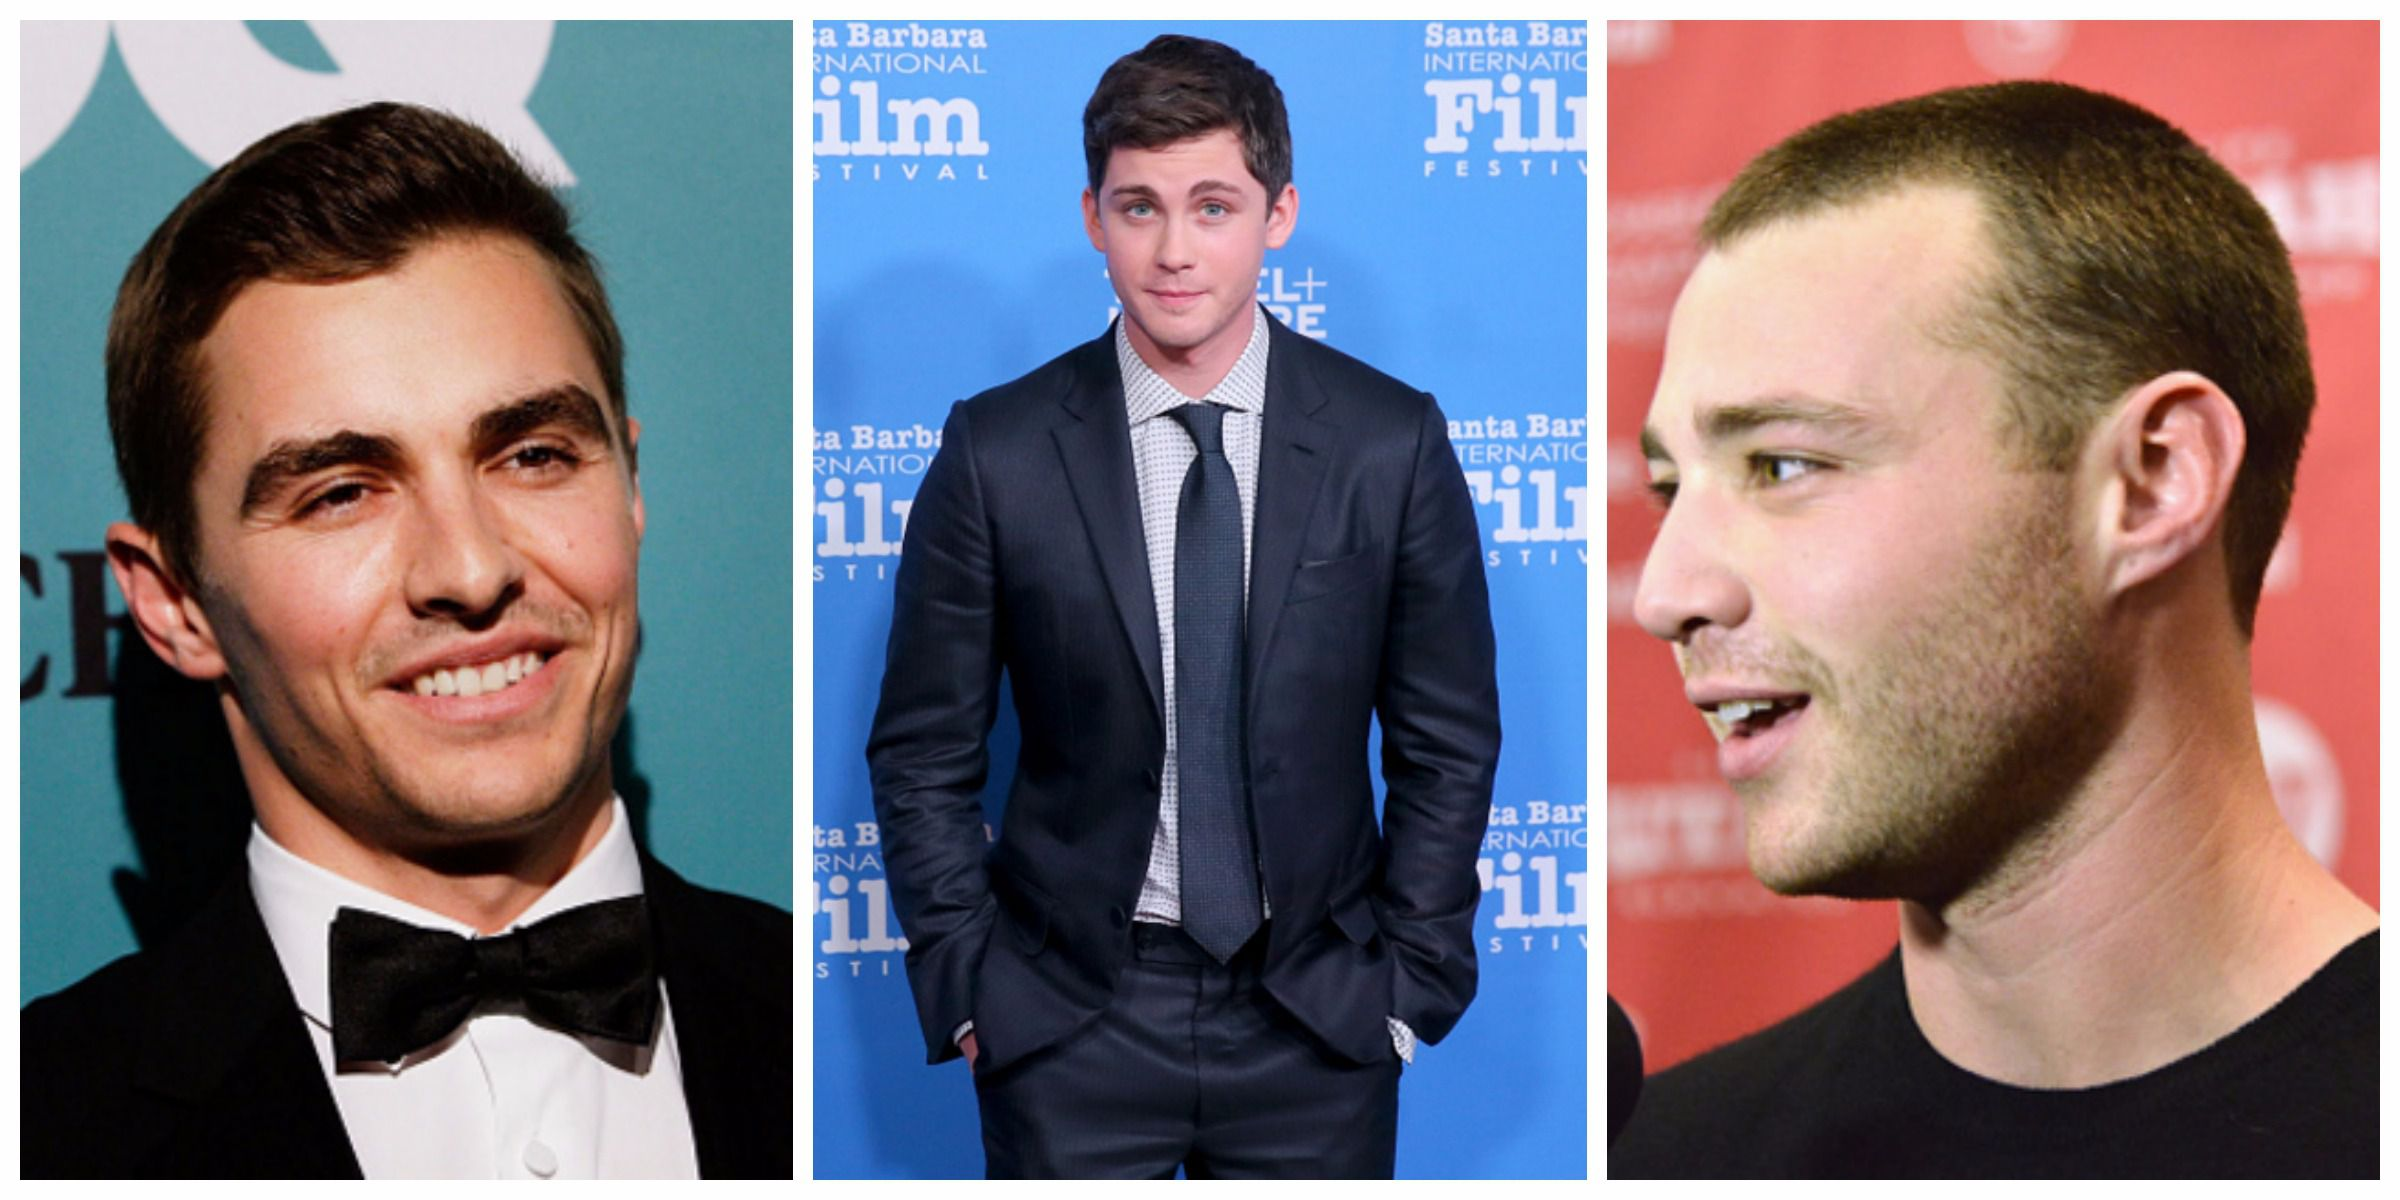 James Franco Girlfriend History Stunning han solo a jew? 3 jewish actors on short list for the role – the